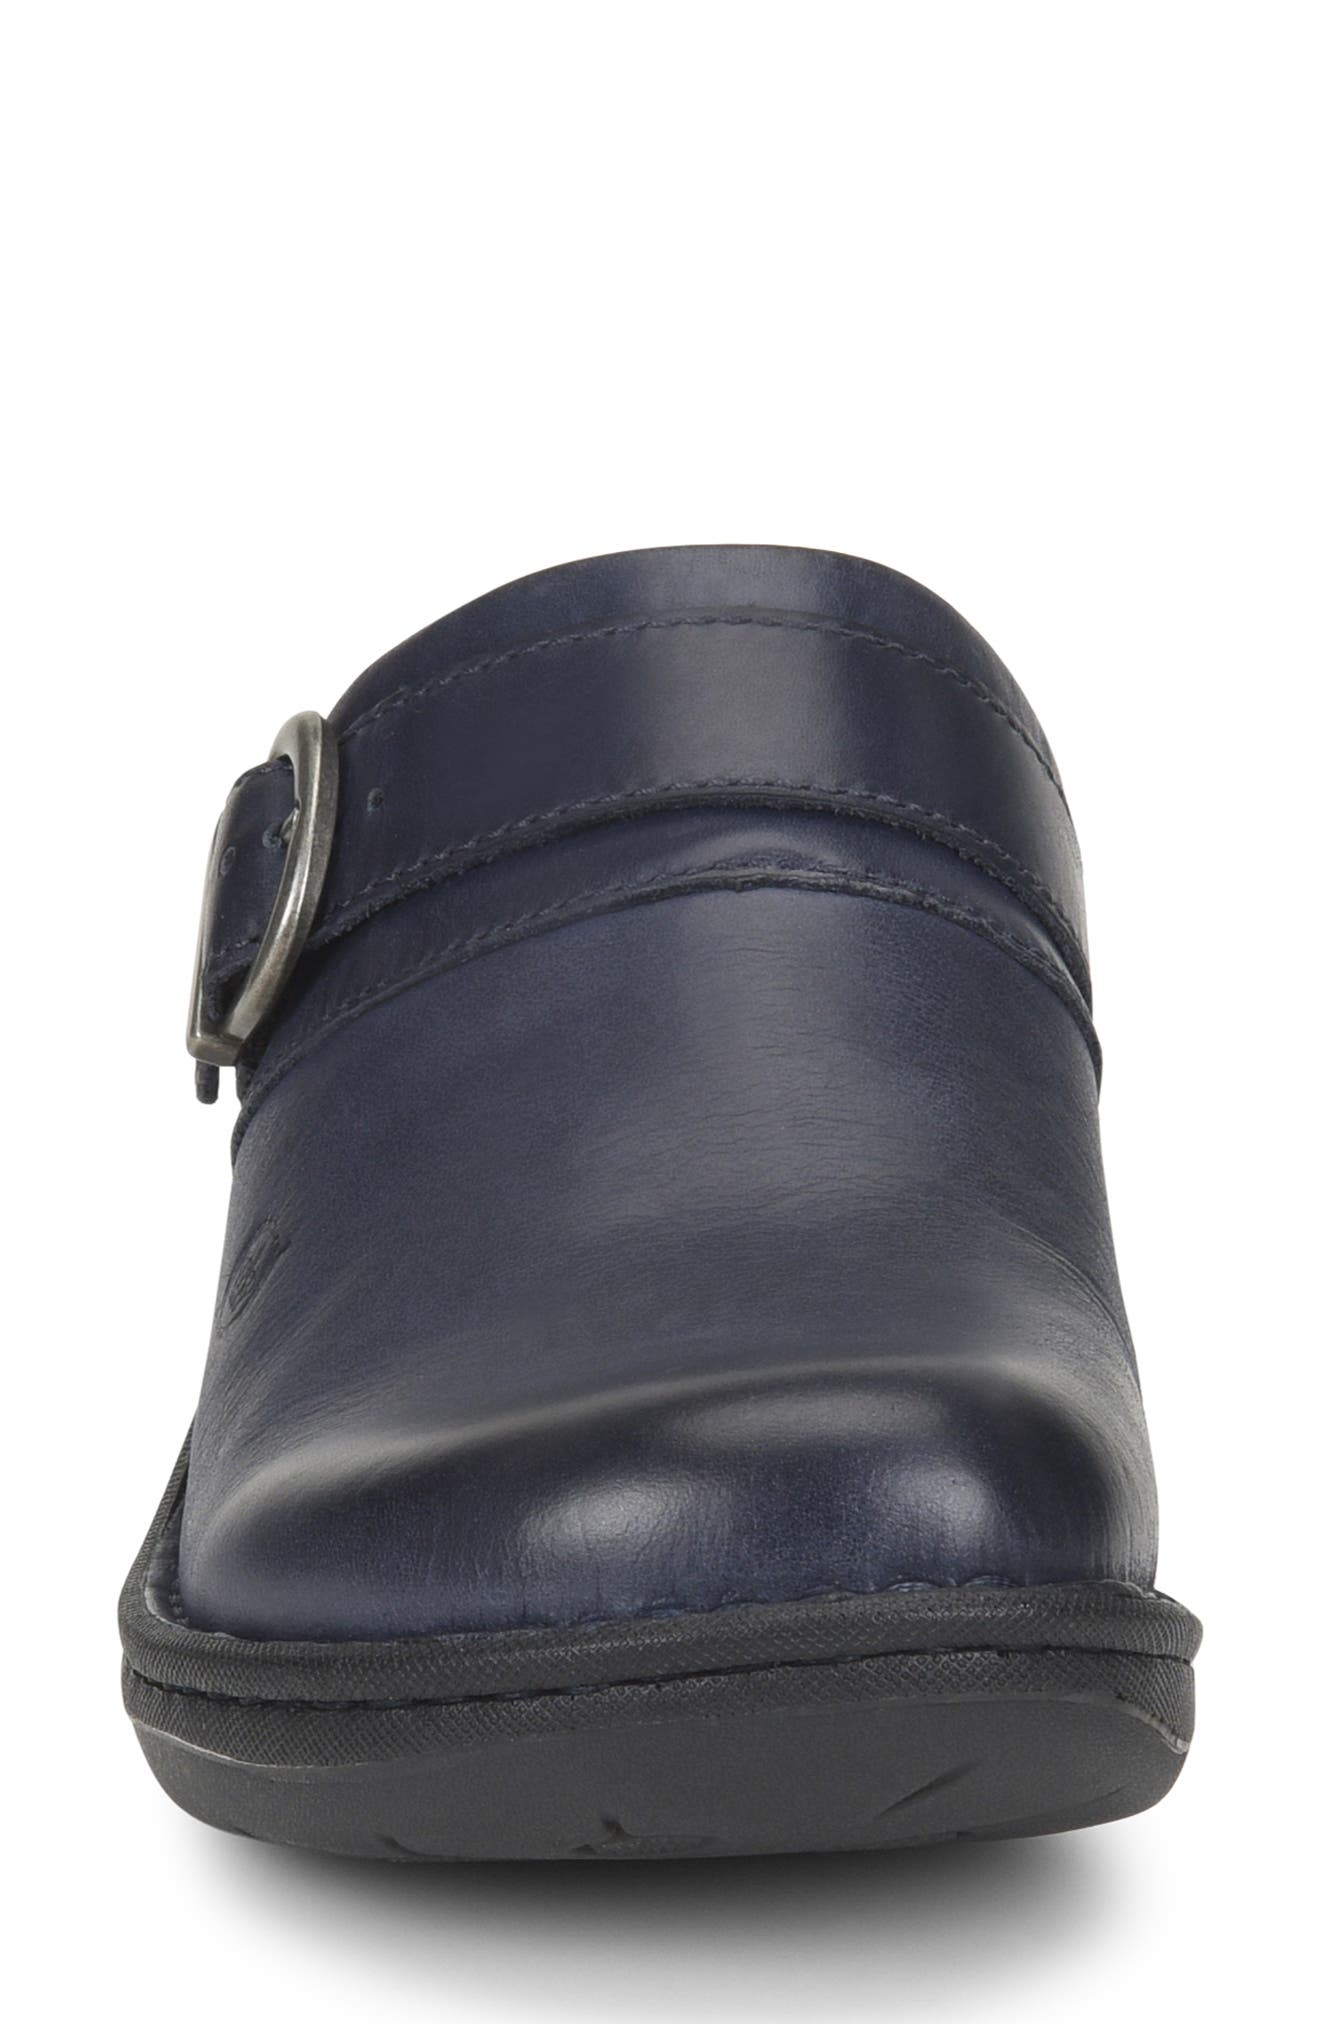 Avoca Clog,                             Alternate thumbnail 4, color,                             NAVY LEATHER